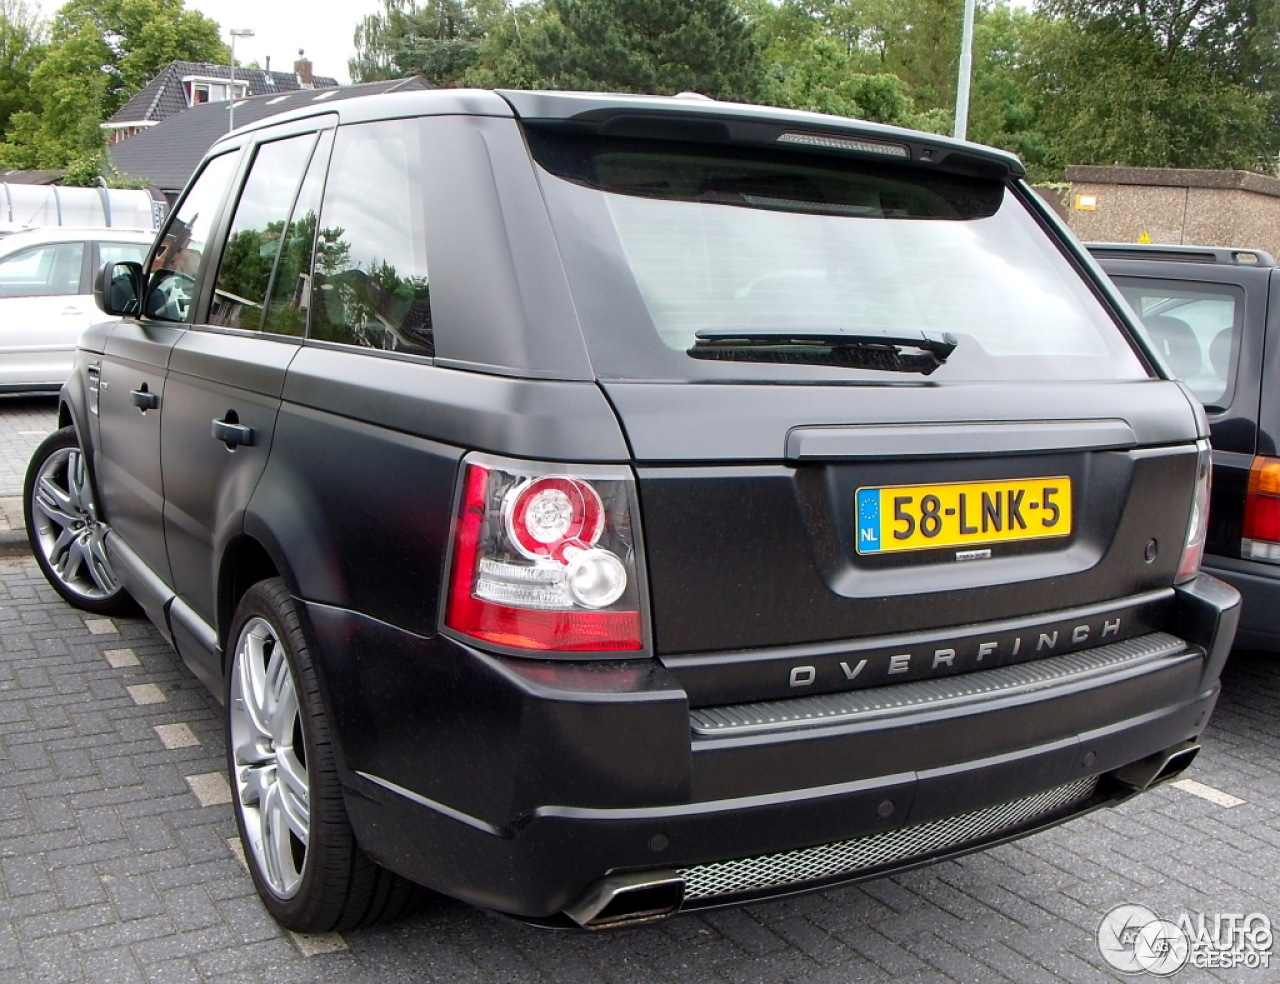 Land Rover Overfinch Range Rover Sport Supercharged 6